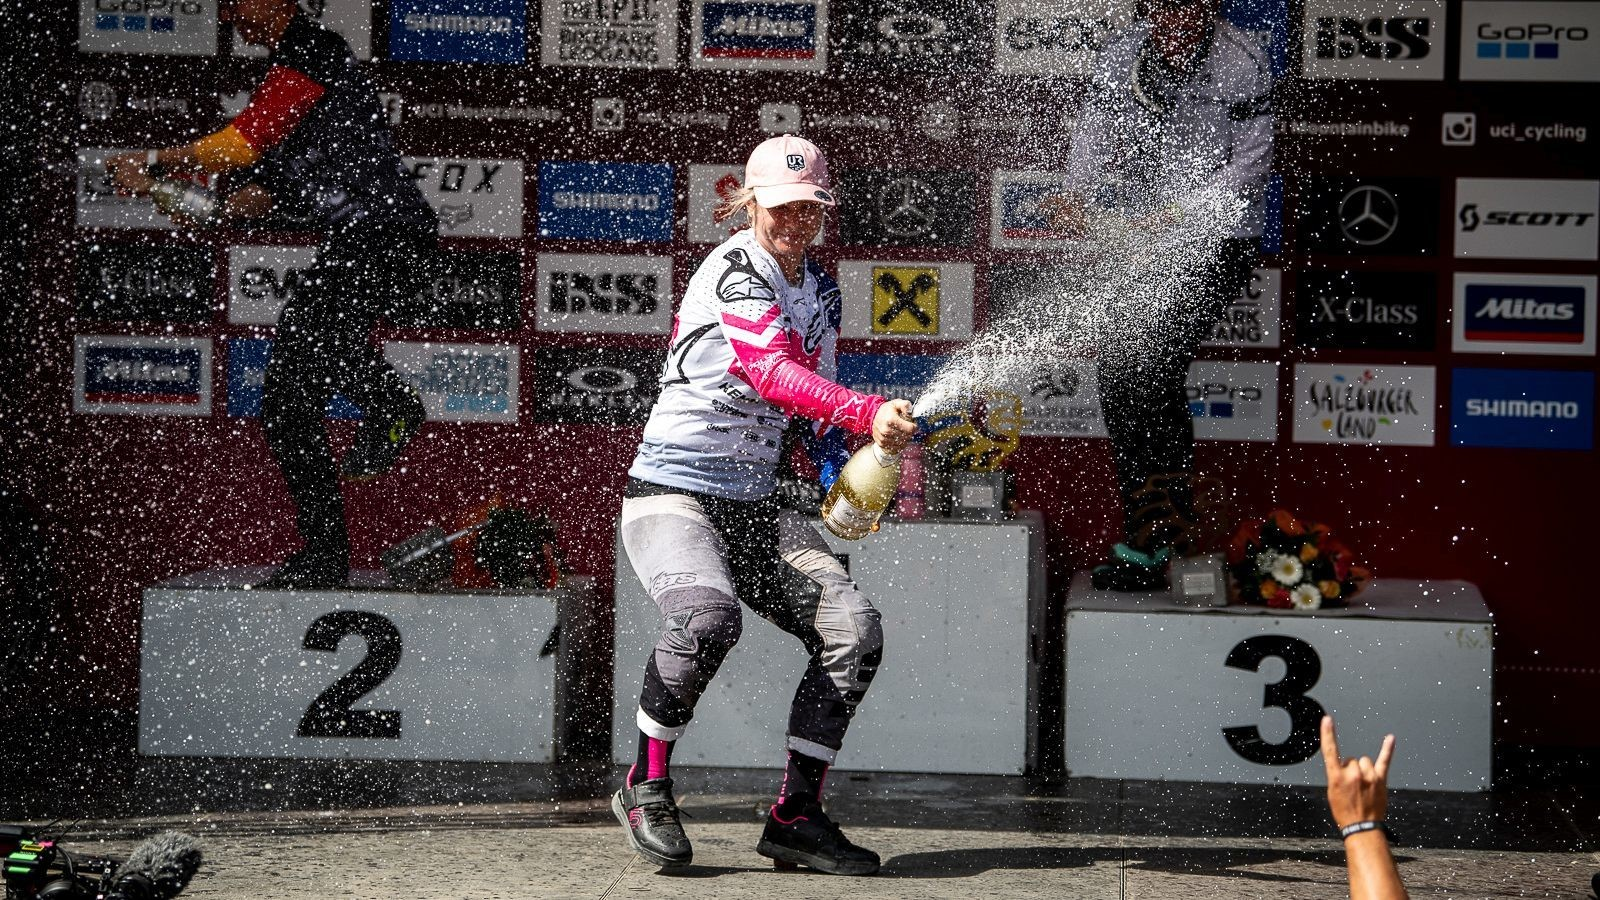 Tracey Hannah Announces Her Retirement From World Cup Racing